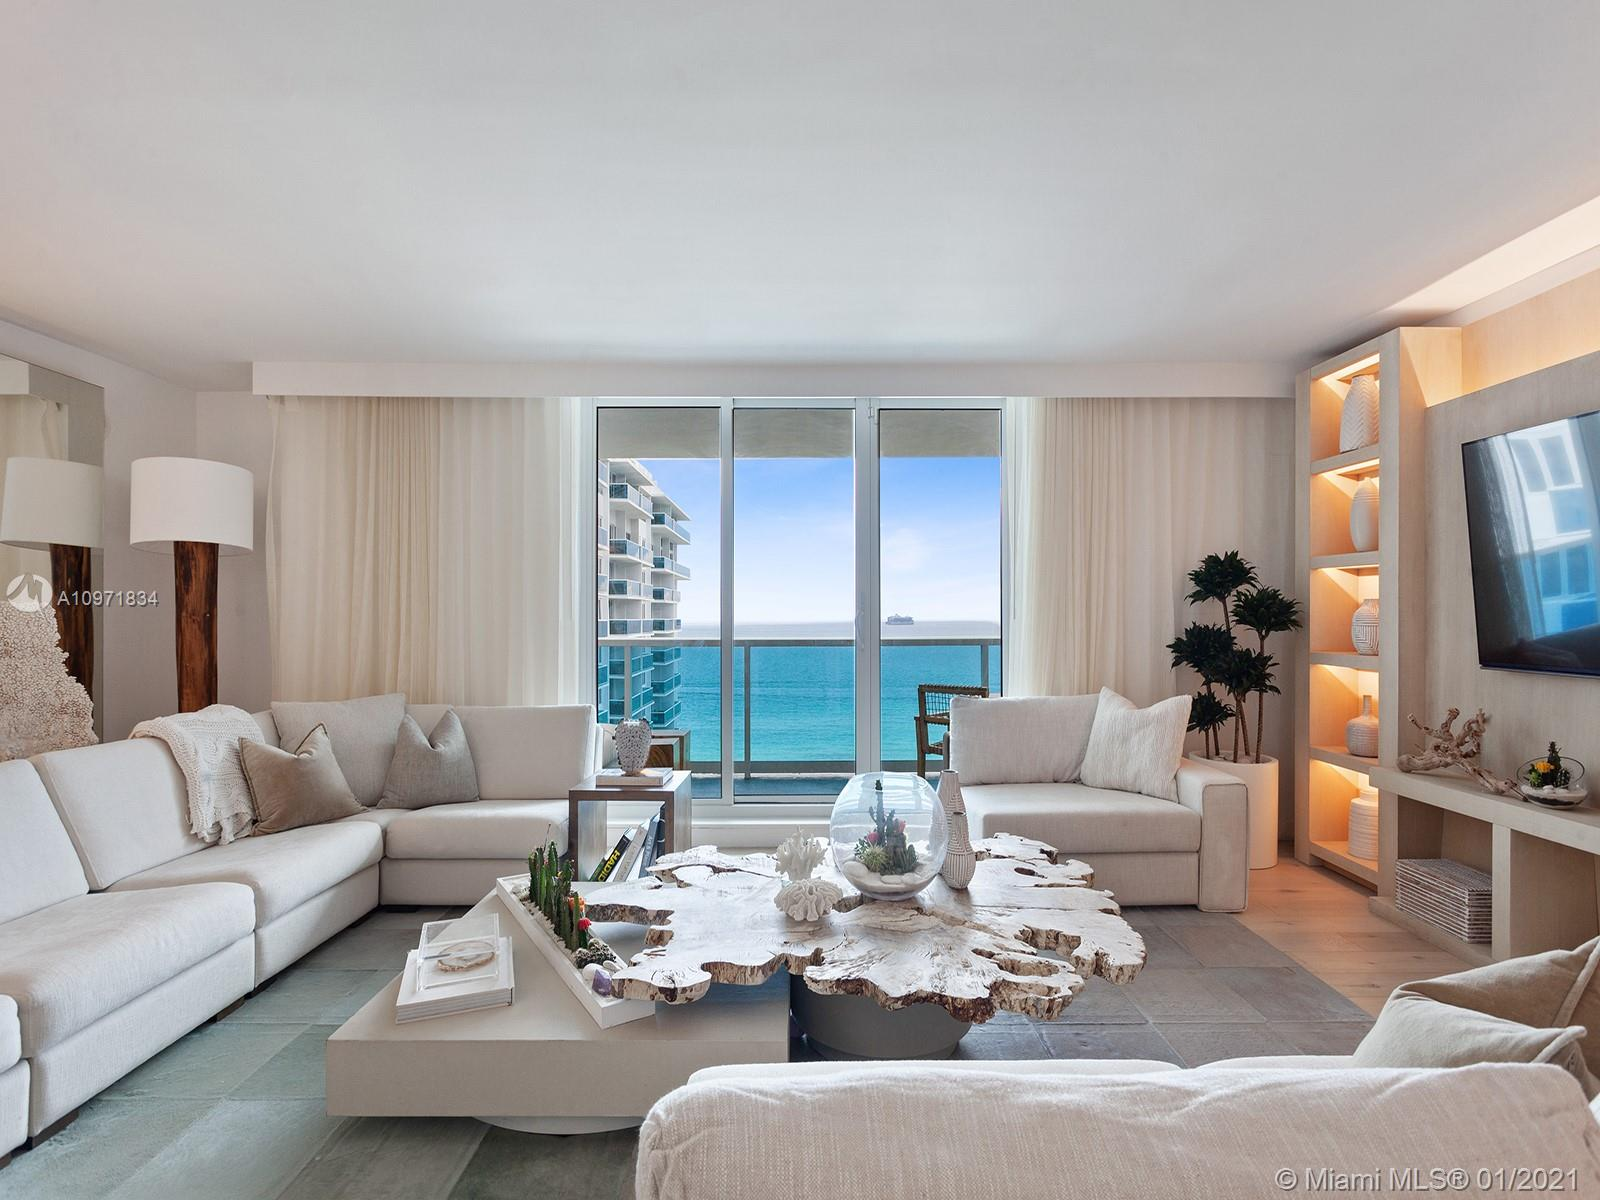 This deluxe oceanfront residence at the One Hotel & Homes South Beach, a prestigious address known for its synthesis of sustainability and luxury, provides a turnkey experience for those looking for a Miami pied-a-terre, as well as a healthy rental revenue stream when not at home. Completely furnished and equipped by interior designers Meyer Davis Studio, the unit is provided with housekeeping and concierge services by the hotel, which can include everything from pre-arrival pantry stocking to luxurious bathroom toiletries. Along with access to hotel amenities, enjoy resident-only services such as a house car, and residential entrance. The 2233 sq. ft. unit comes with three bedrooms and three full baths, in-unit washer and dryer, and spectacular balcony with pool and ocean views.